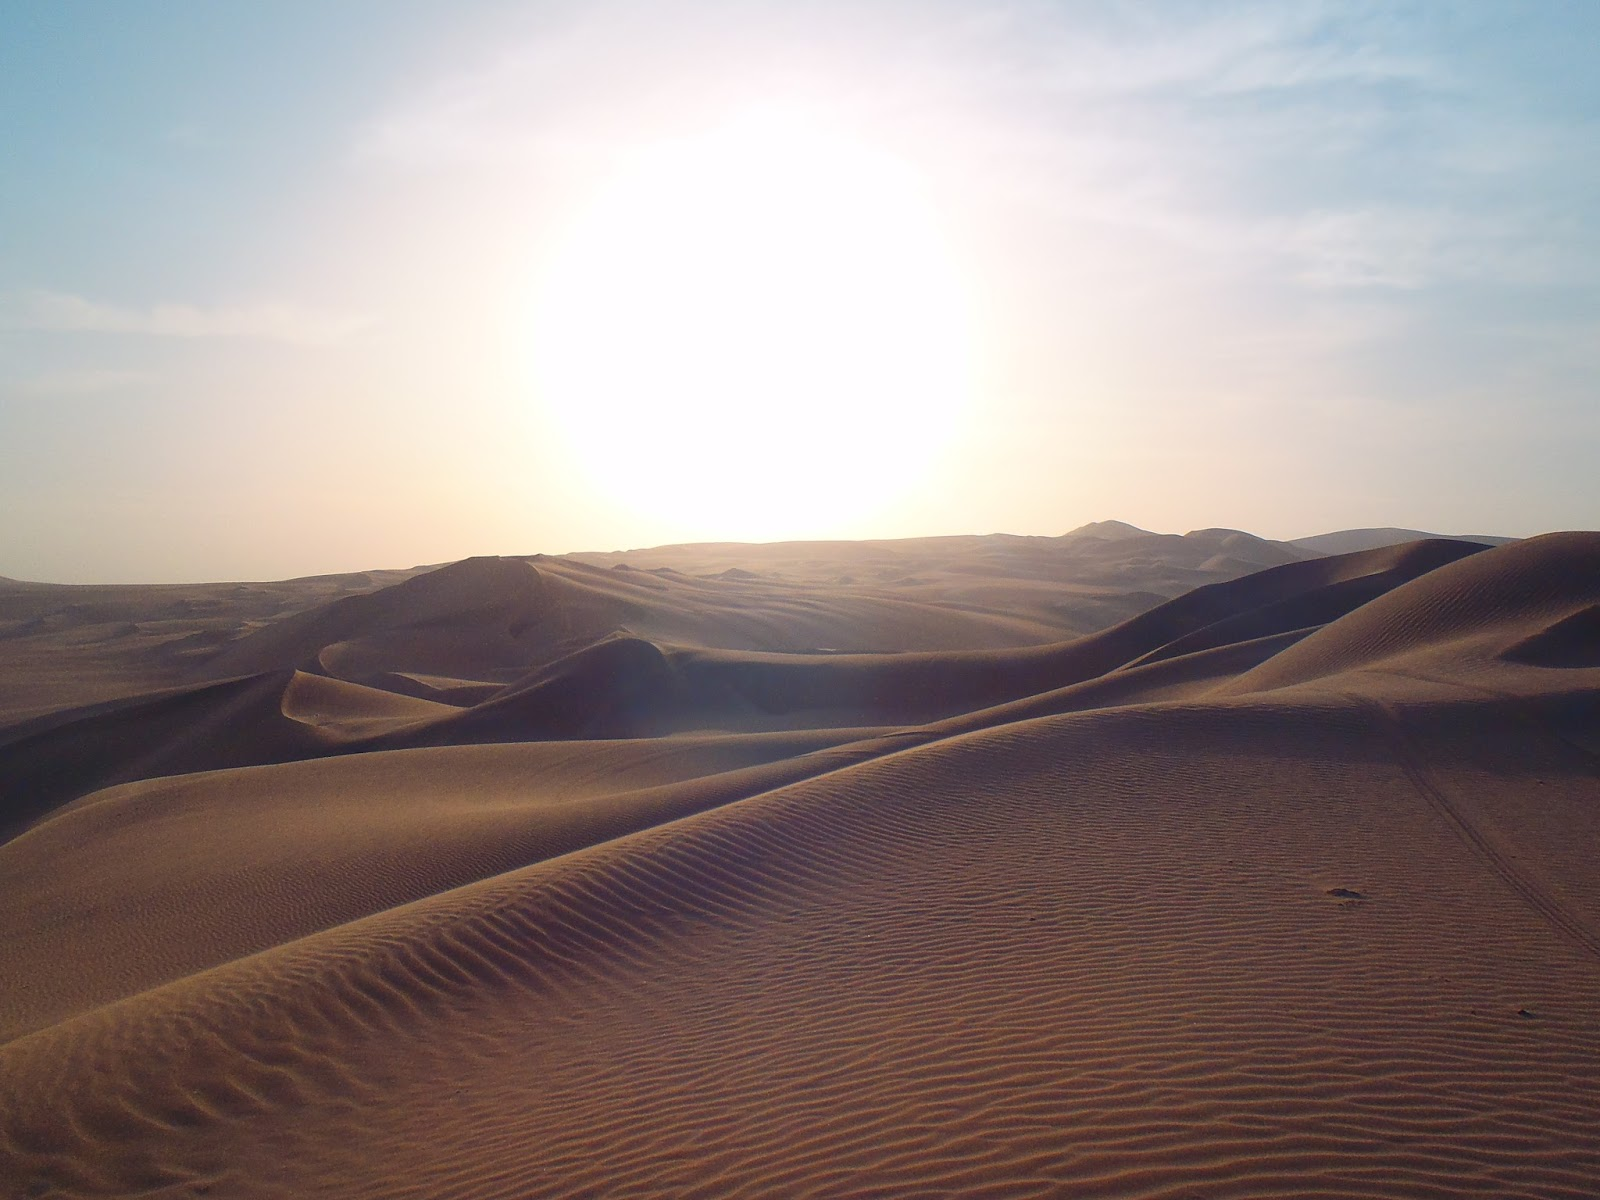 Sand dunes in Huacachina